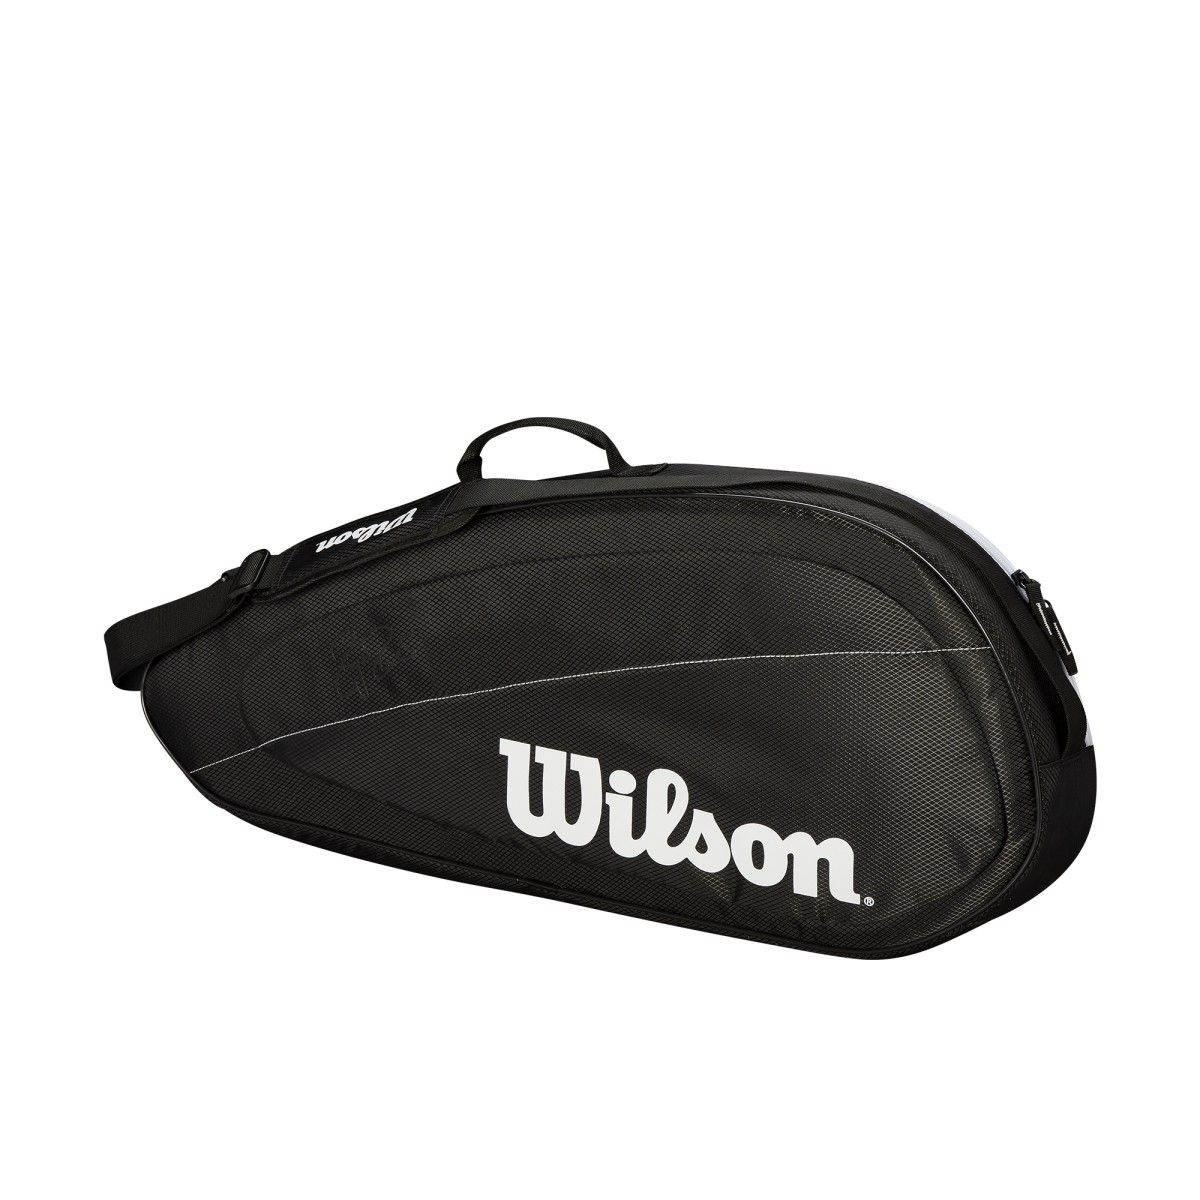 Wilson Fed Team 2018 3 Pack Tennis Bag Black White